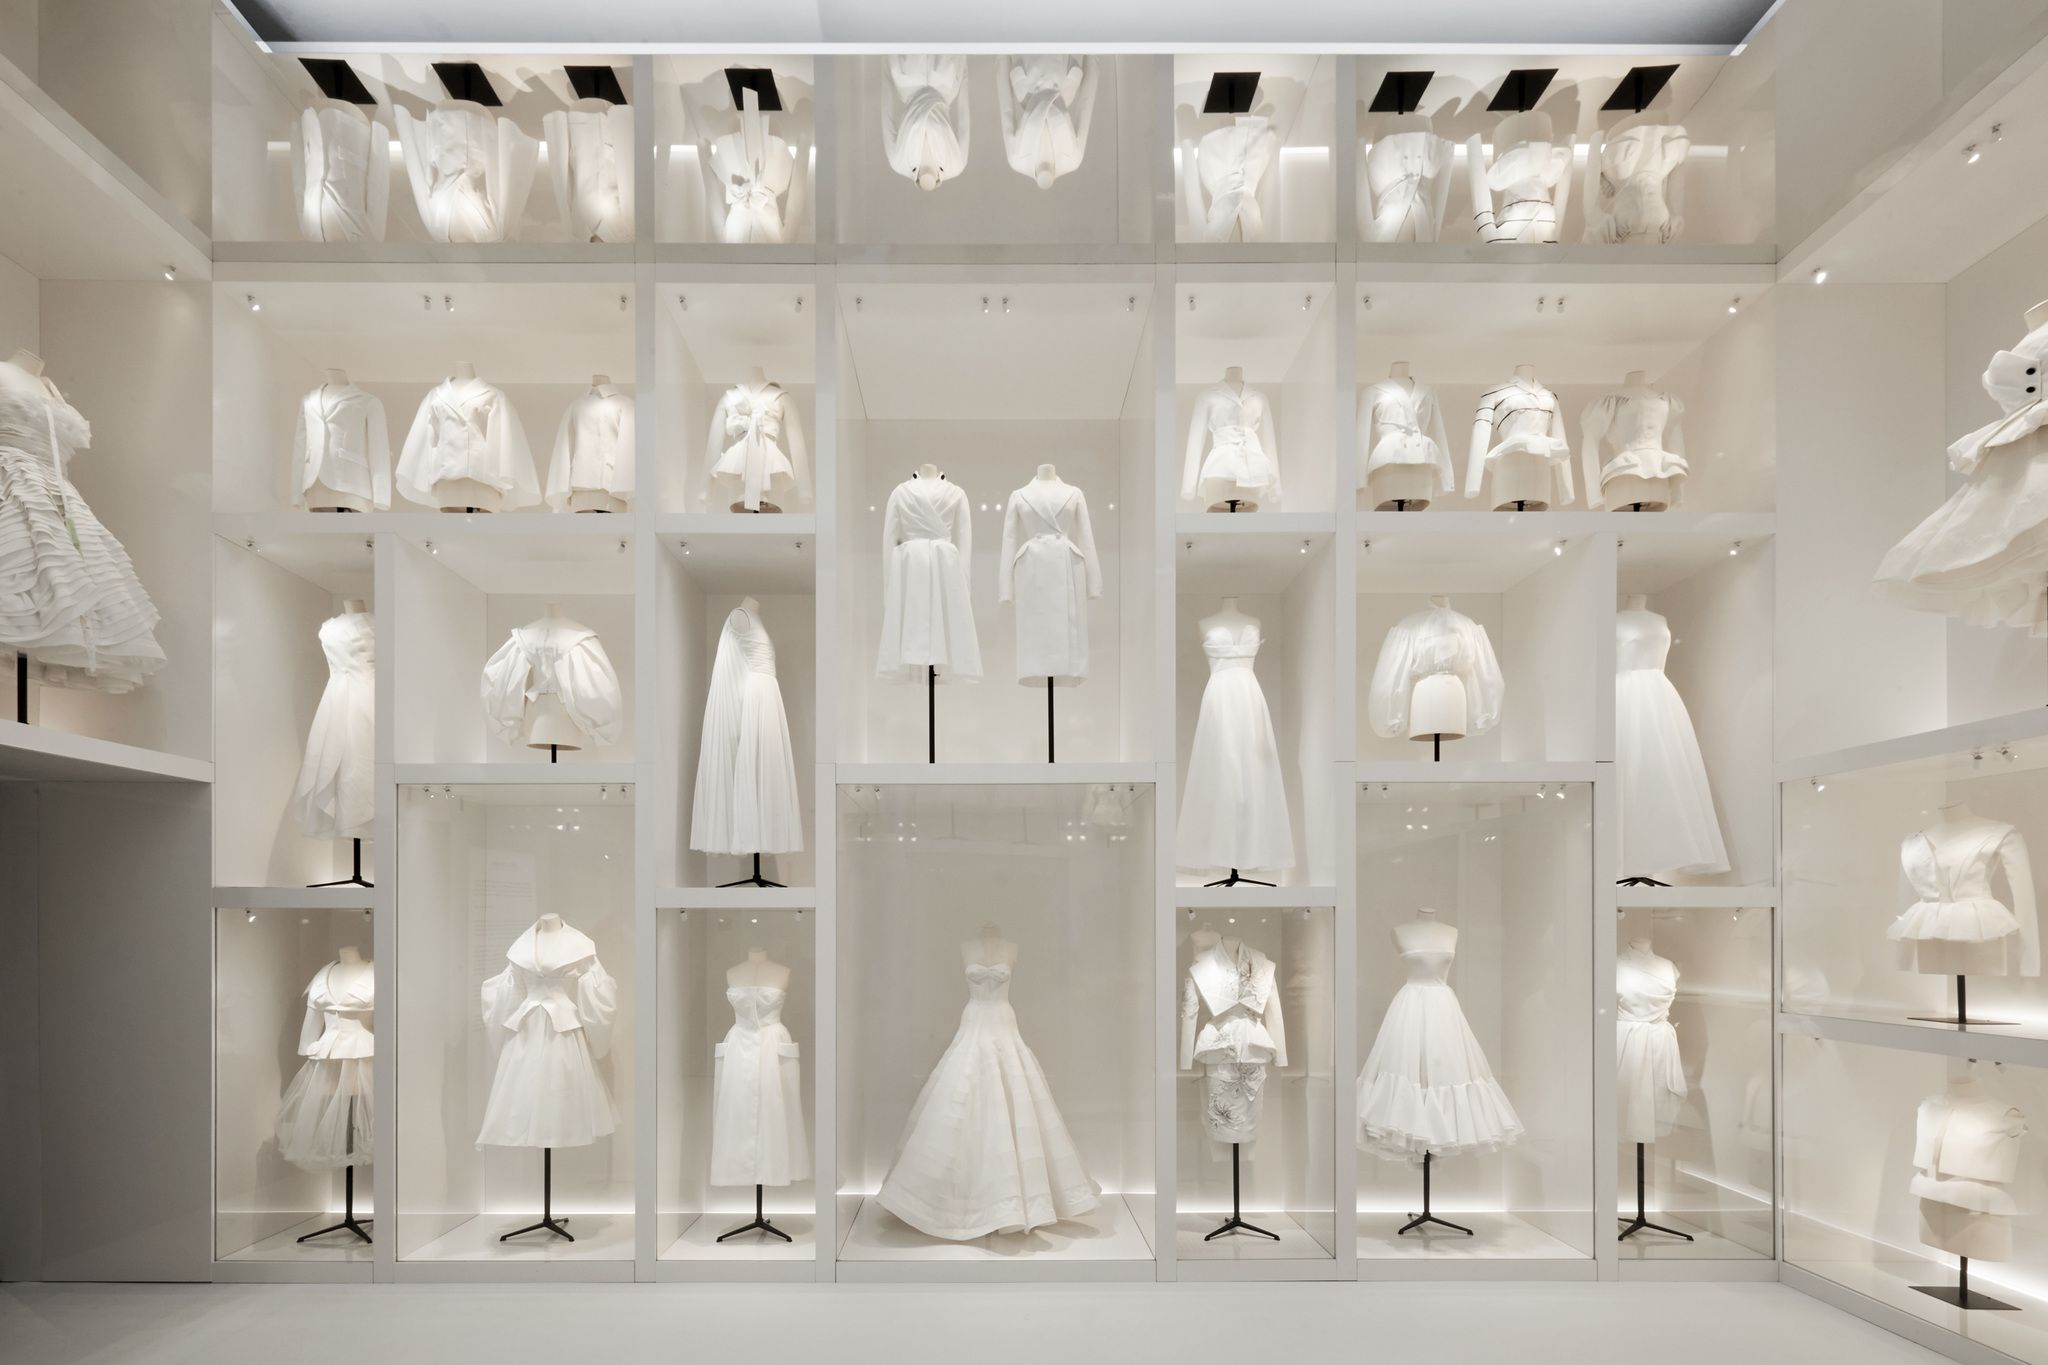 22680bffca5b78 Inside the Stunning Christian Dior Exhibit at London s Victoria   Albert  Museum